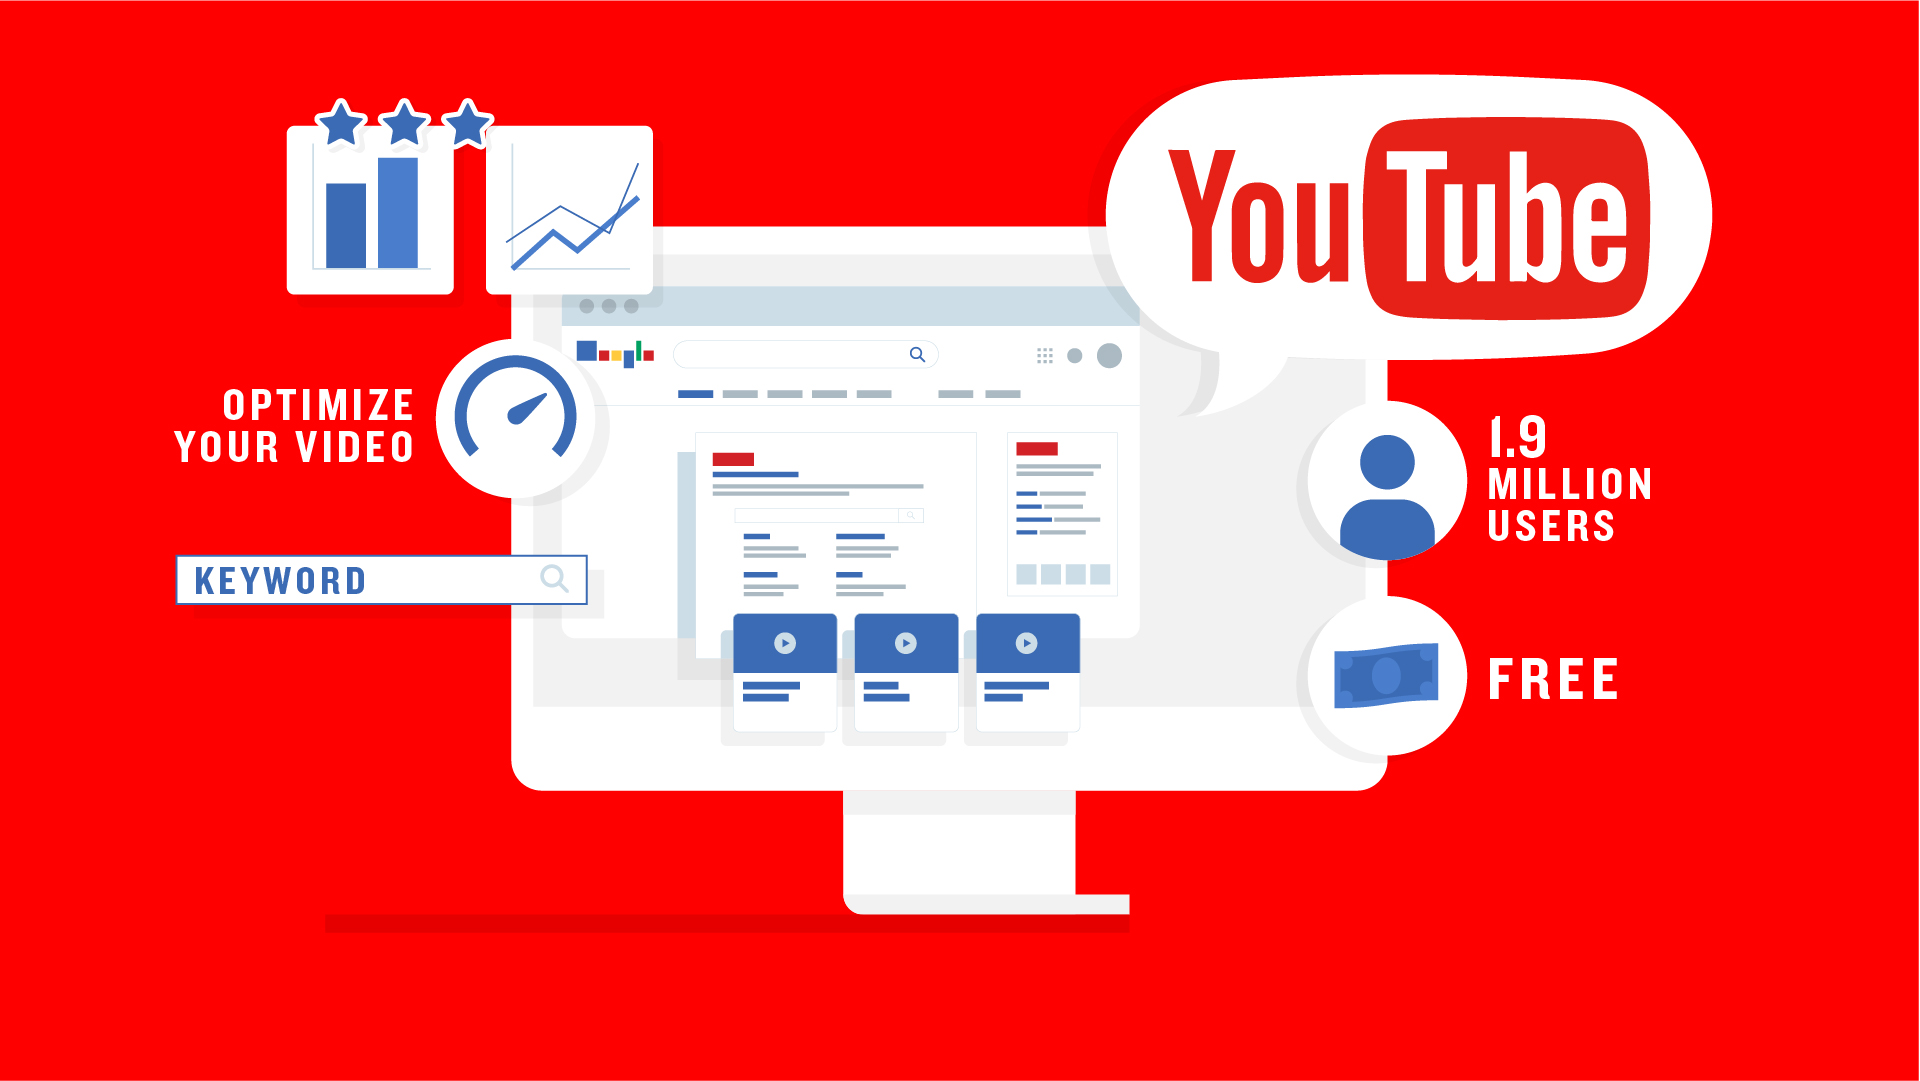 video_player_features_infographic_youtube